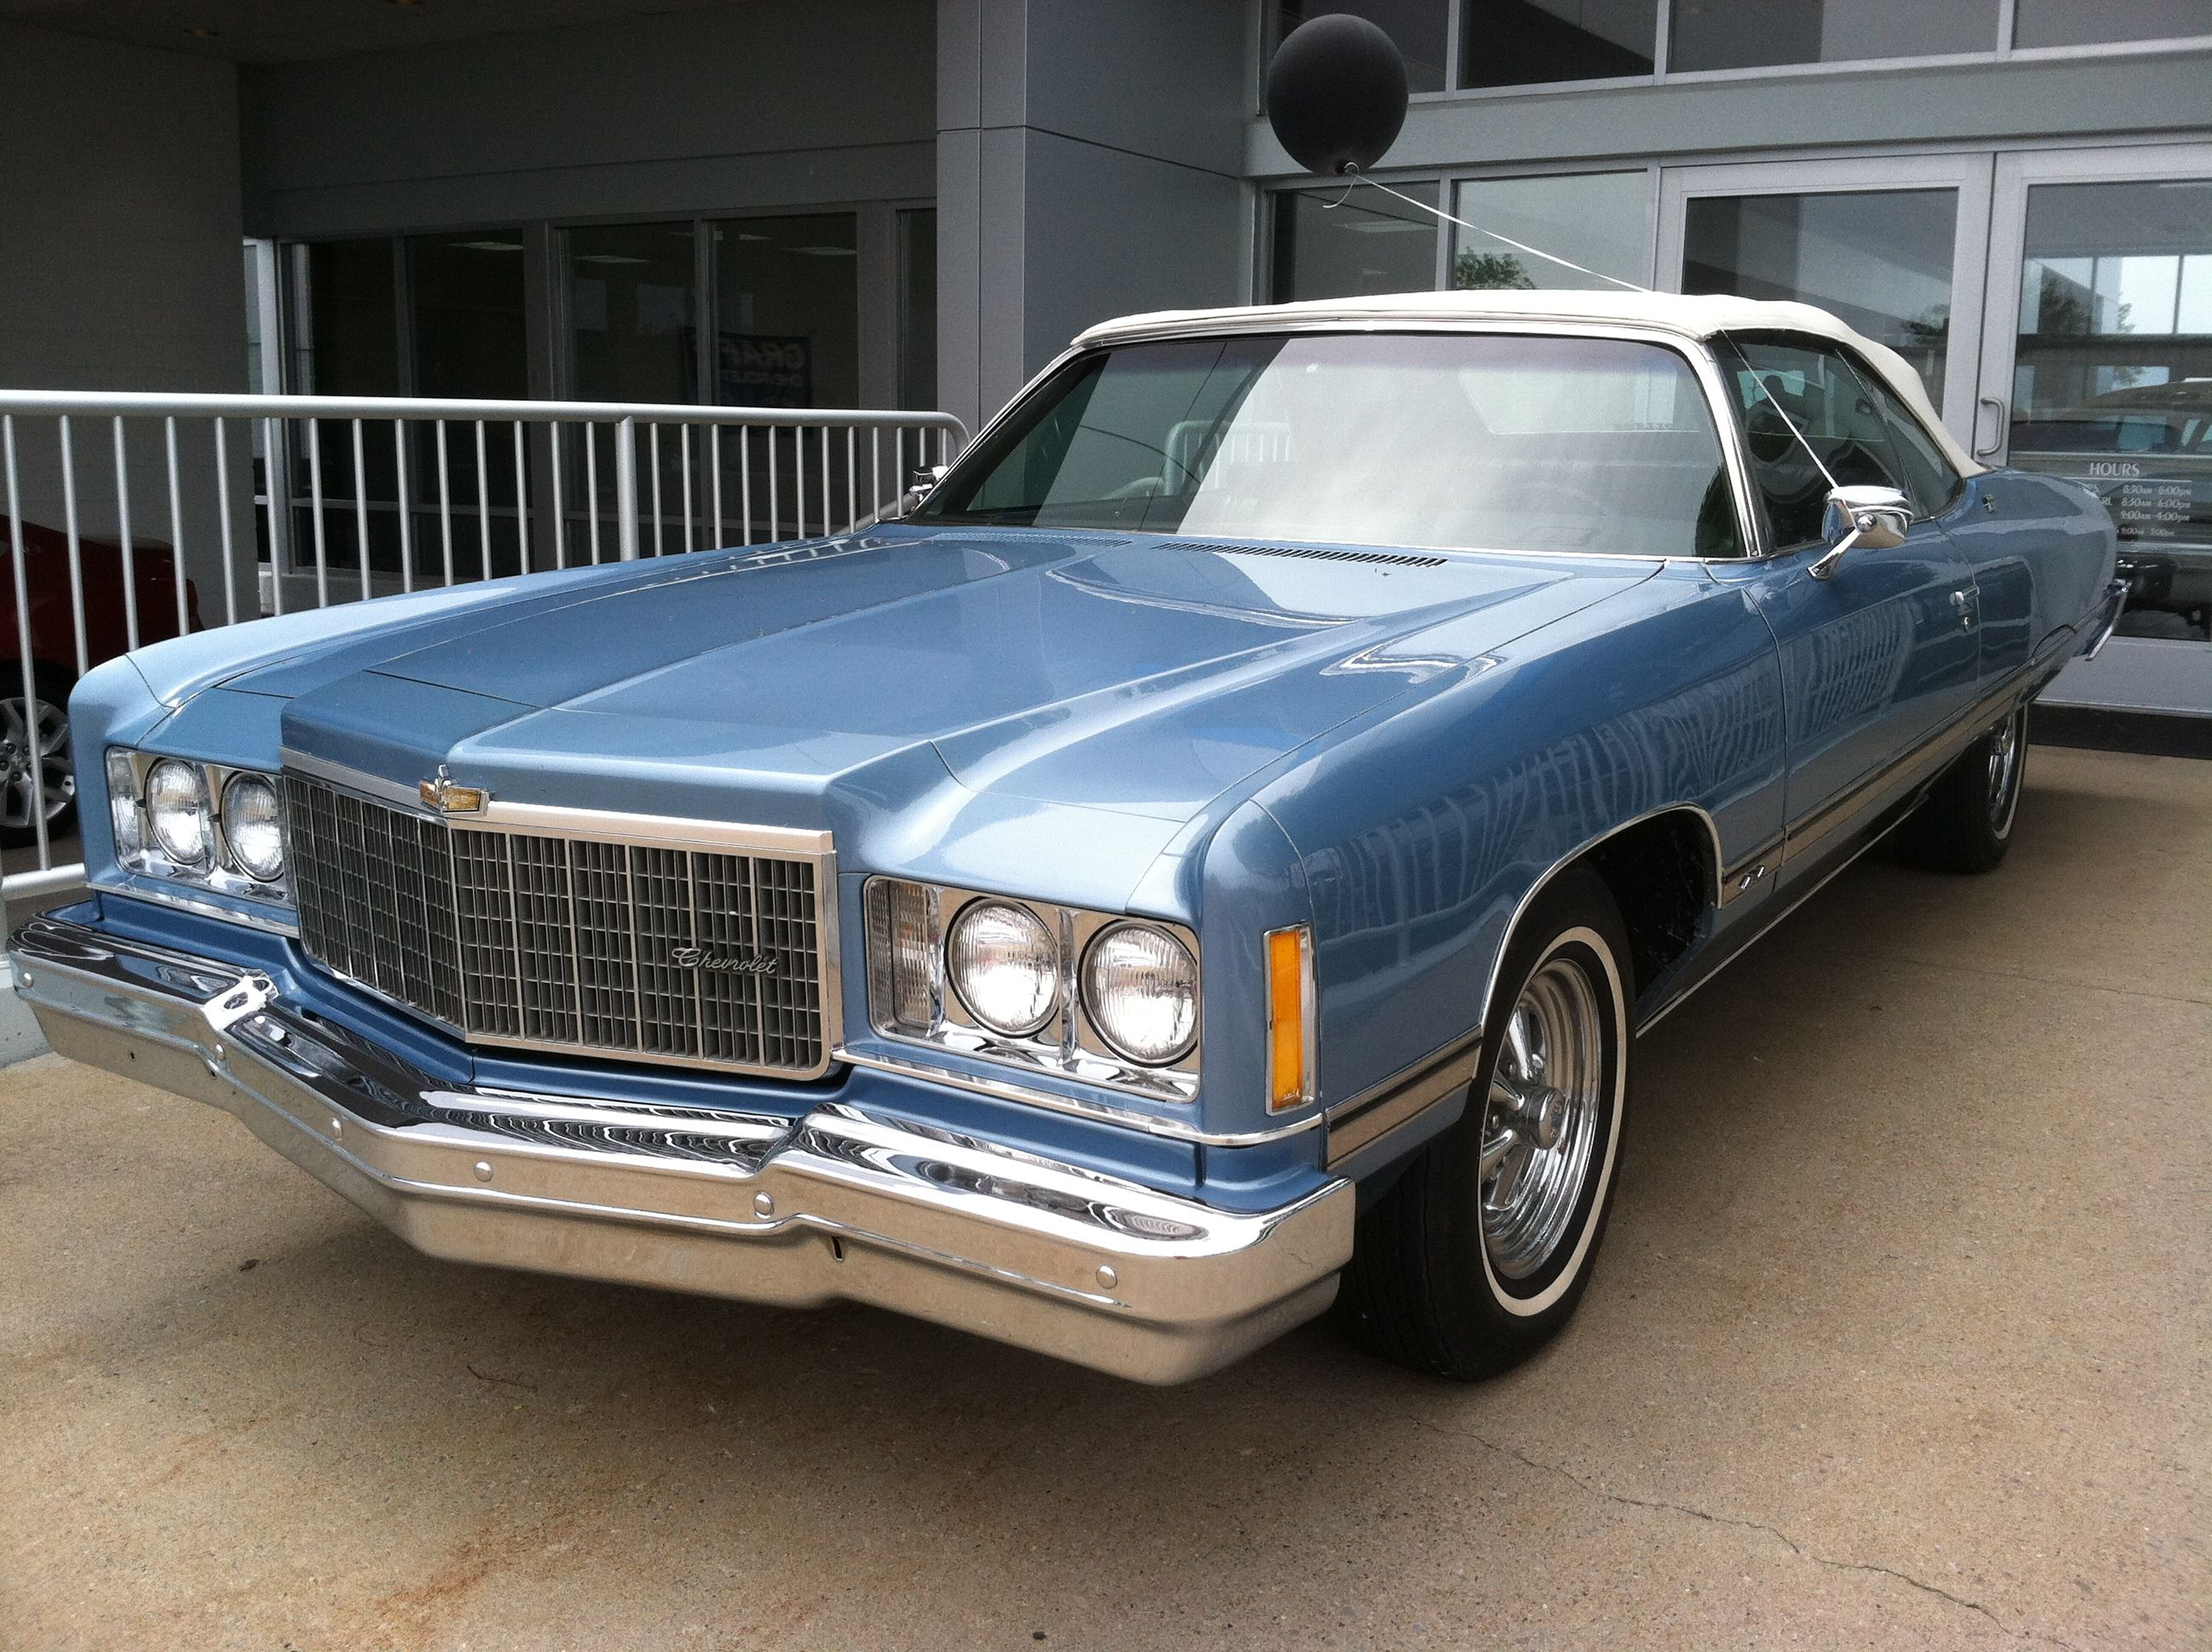 hight resolution of 1974 chevrolet caprice convertible chevroletimpala1970 chevrolet caprice chevrolet chevelle chevy impala ss